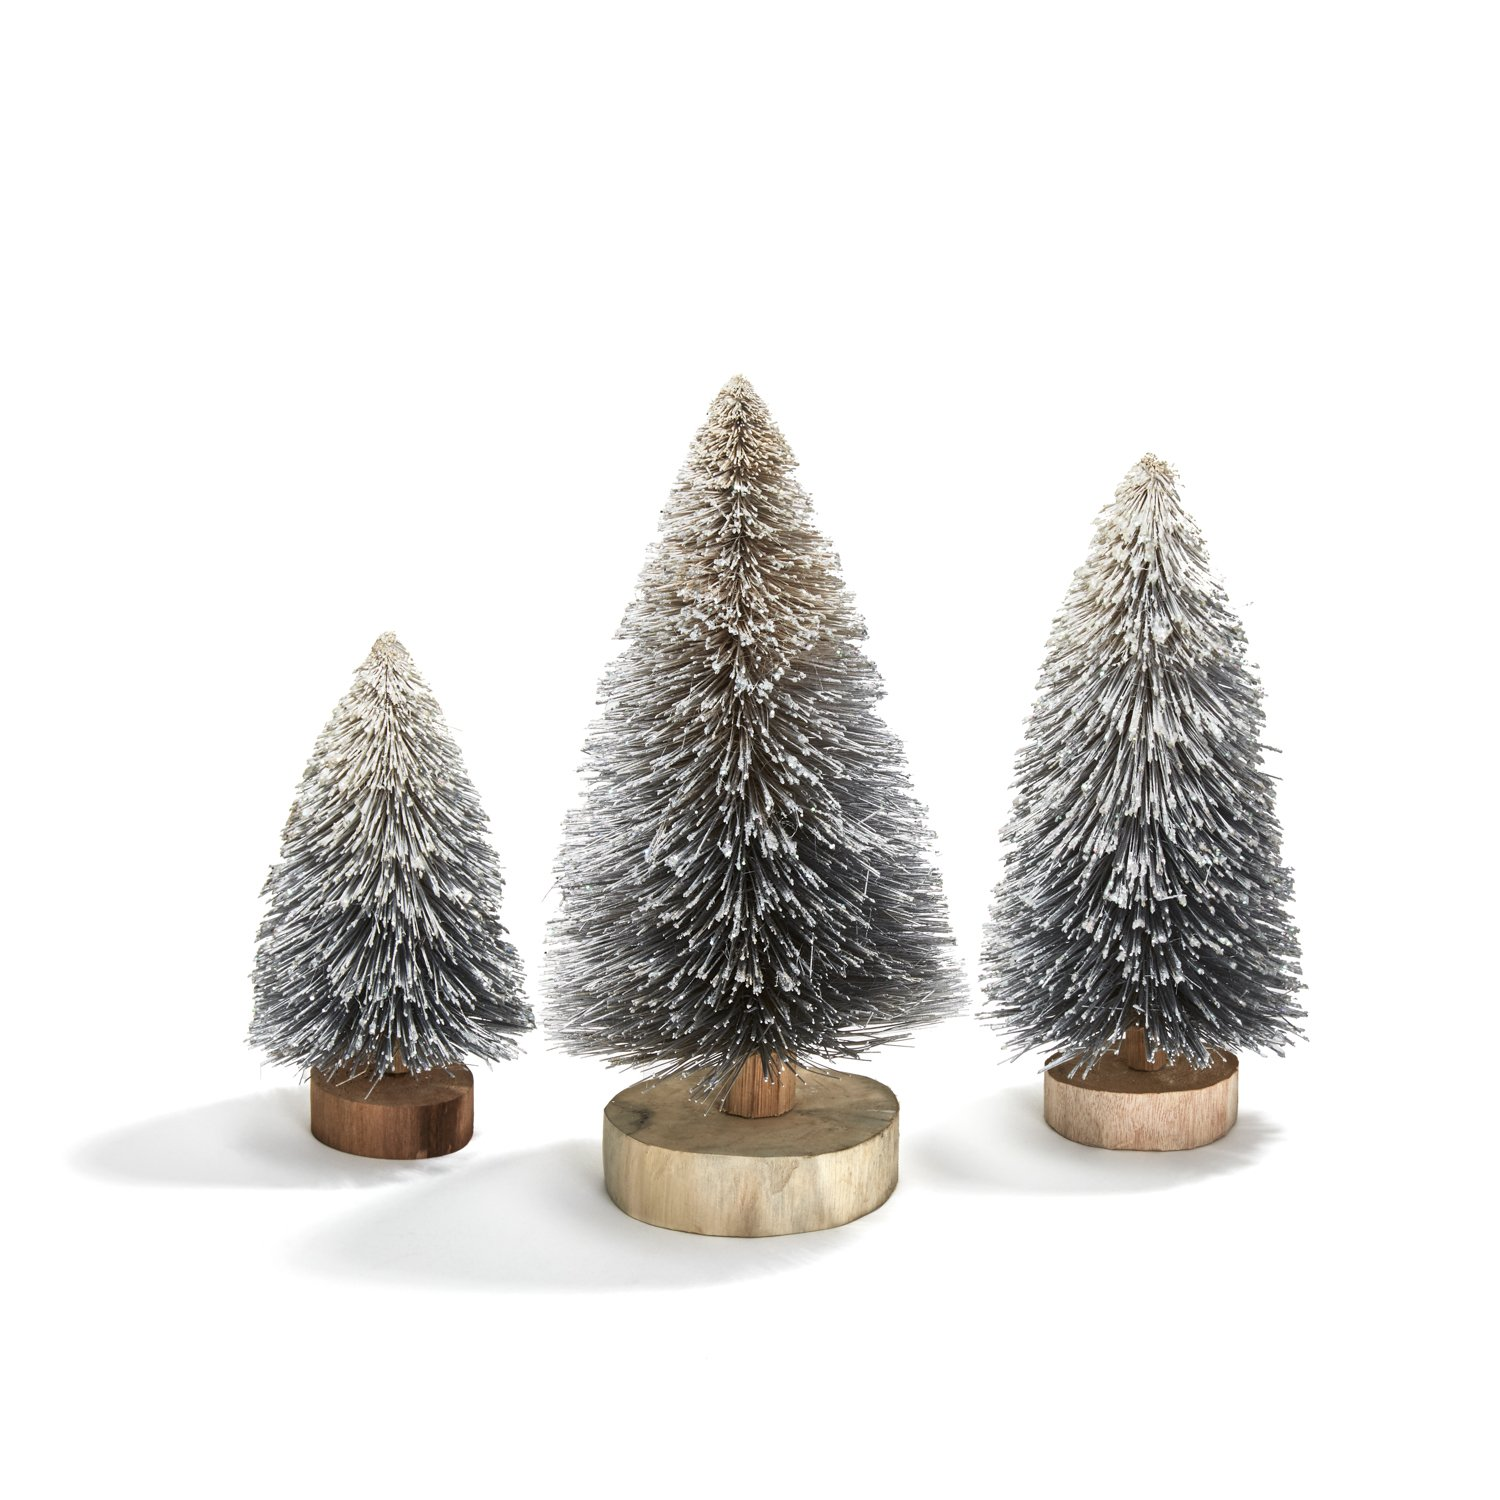 LampLust Bottle Brush Christmas Trees, Silver Sisal Table Top Decoration - Set of 3 by LampLust (Image #1)